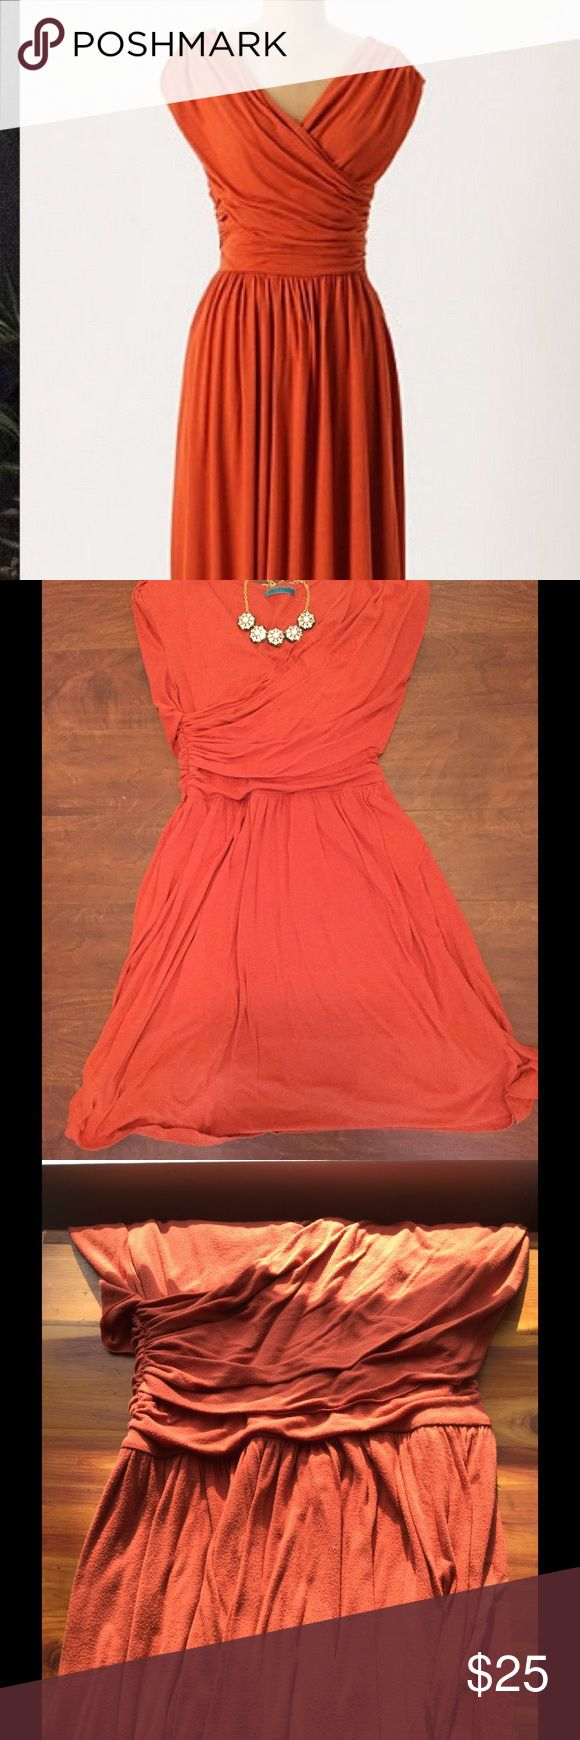 """🌷WEEKEND SALE🌷 Orange Whirligig Dress Beautiful faux-wrap burnt orange dress from Anthro, brand is Velvet. Comfortable and soft! Well loved with some pilling (See fourth photo for close up) but still very wearable. Stretchy with side ruching and cap sleeves. Approx 40in long shoulder to hem, hits at my knees and I'm 5'7"""". 50% rayon, 50% polyester. Offers welcome! Check out my bundle discounts! Anthropologie Dresses Midi"""